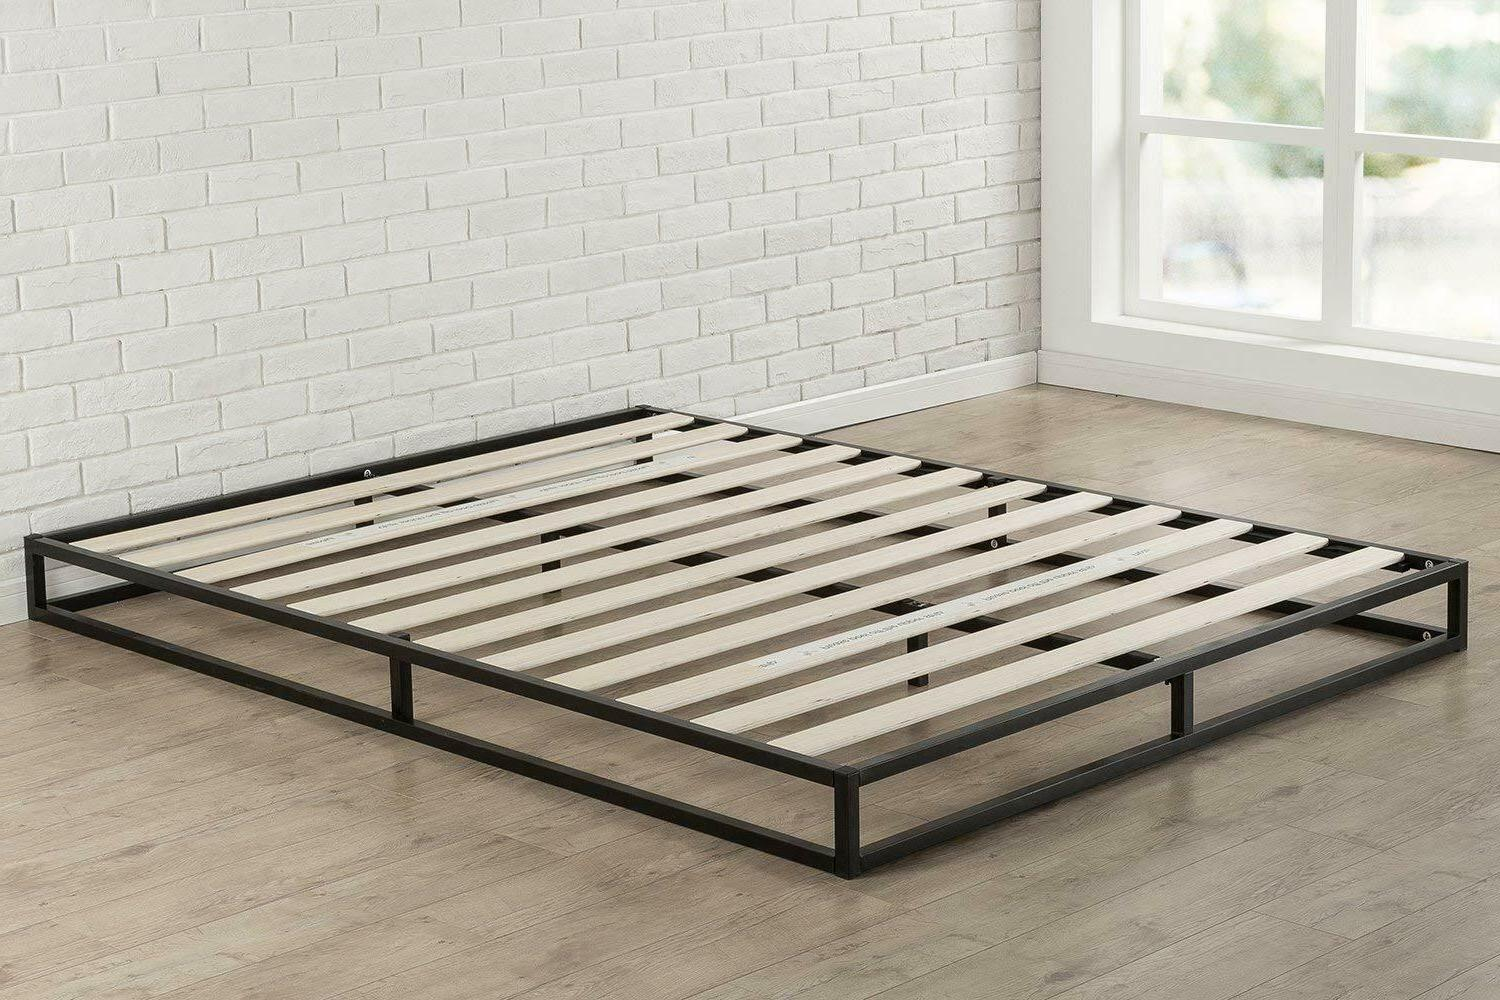 joseph 6 inch platforma low profile bed